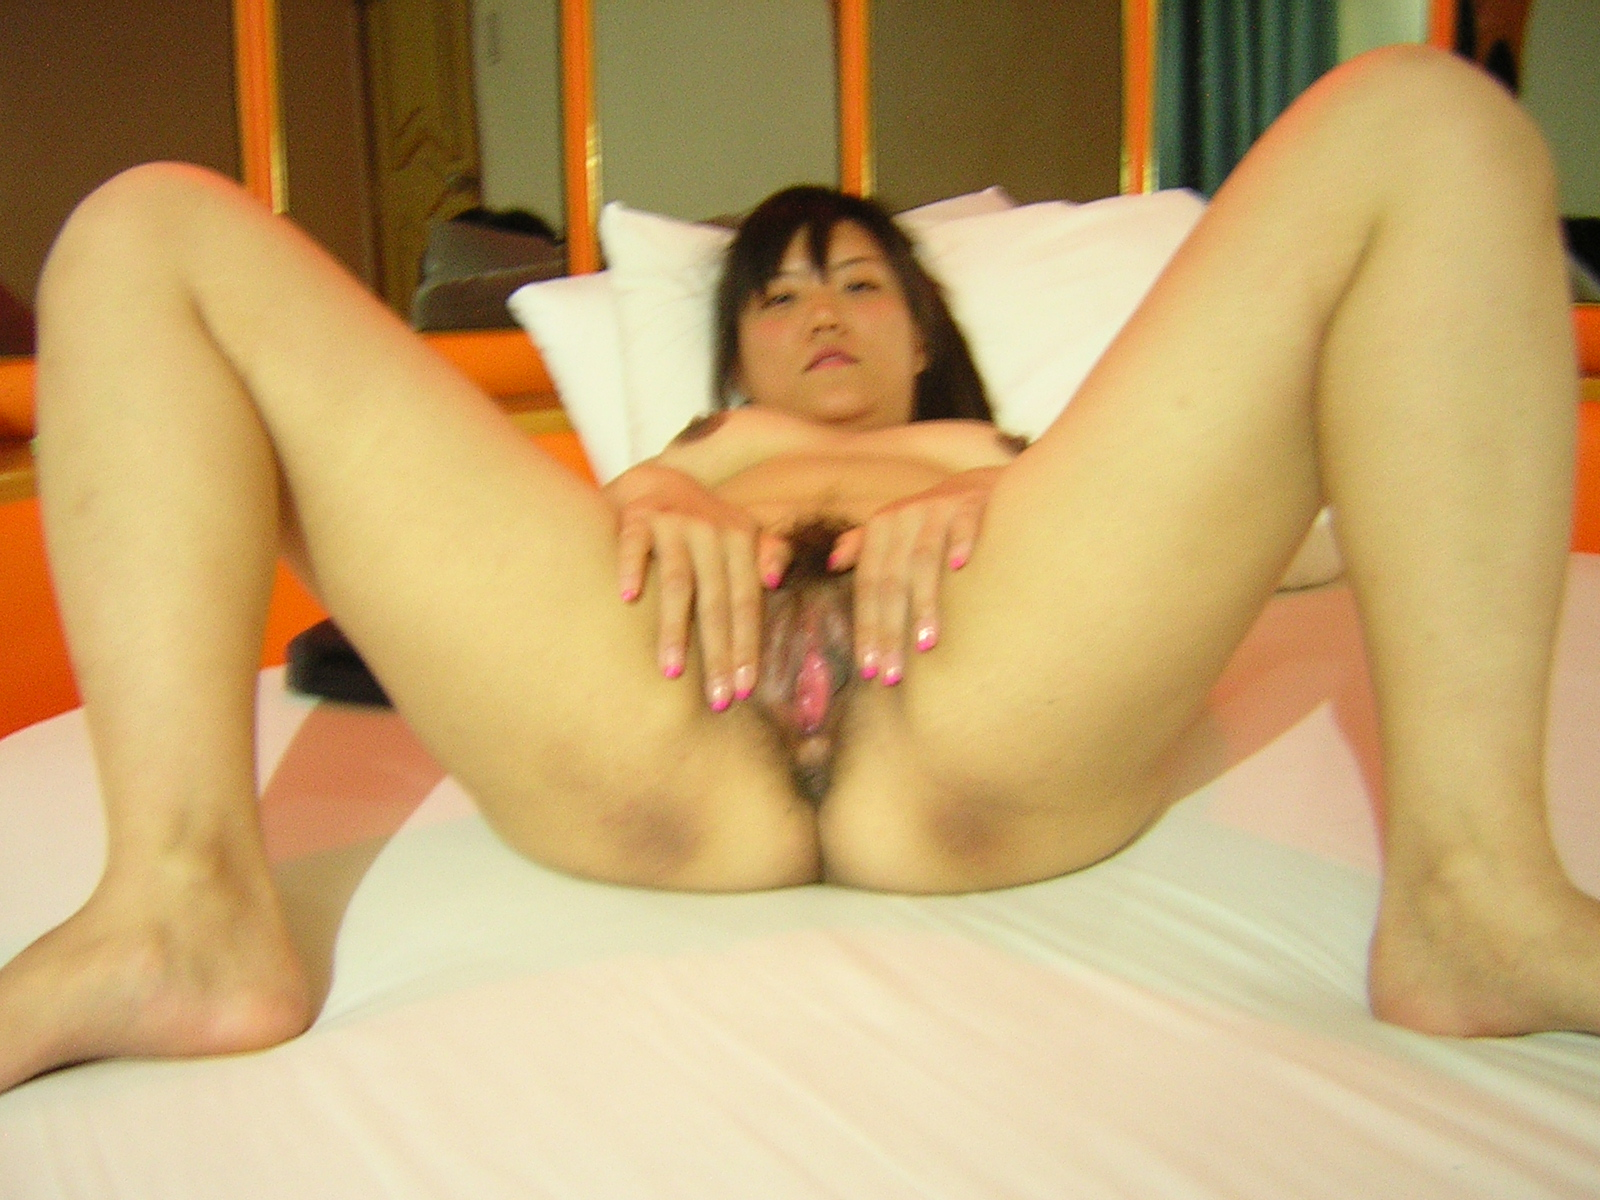 chubby but cute korean girlfriend s sweet pink vagina and